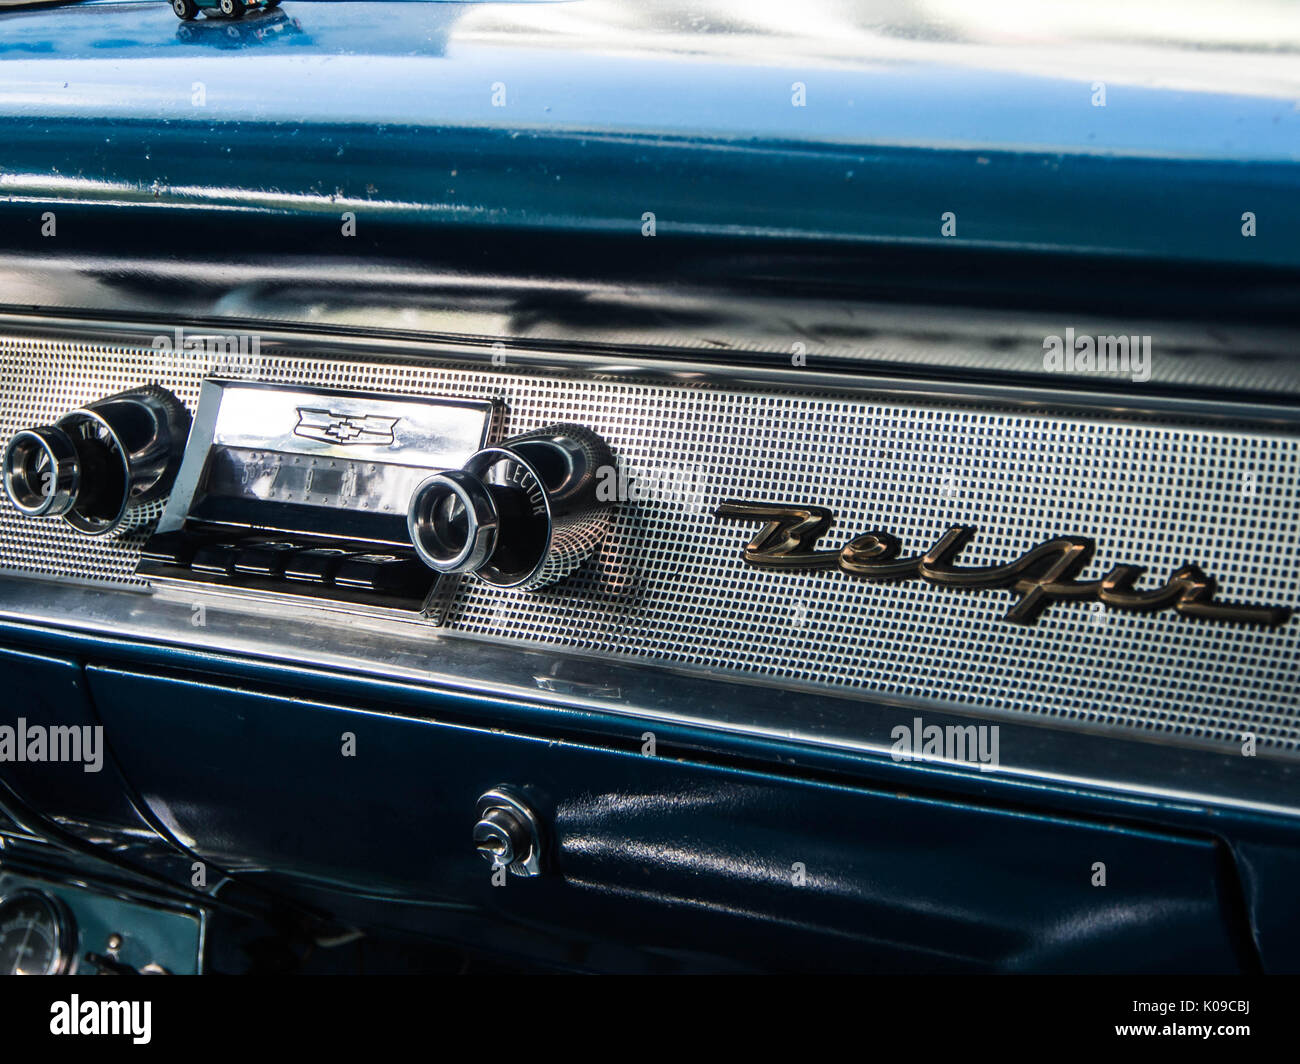 The radio in the front of a 1957 Chevrolet Bel Air four door sedan ...